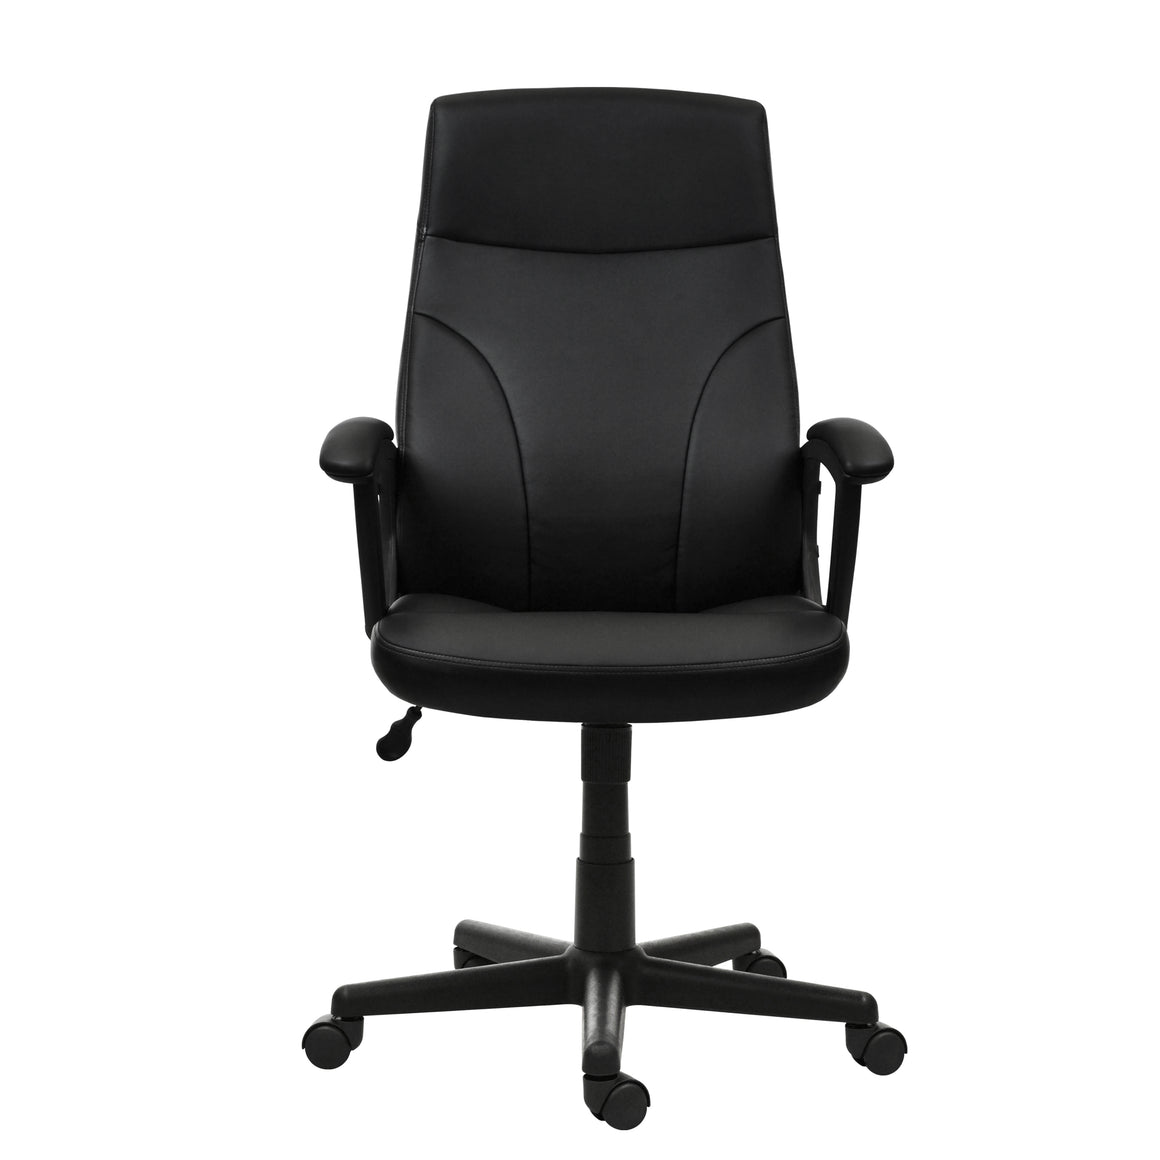 Medium Back Executive Office Chair